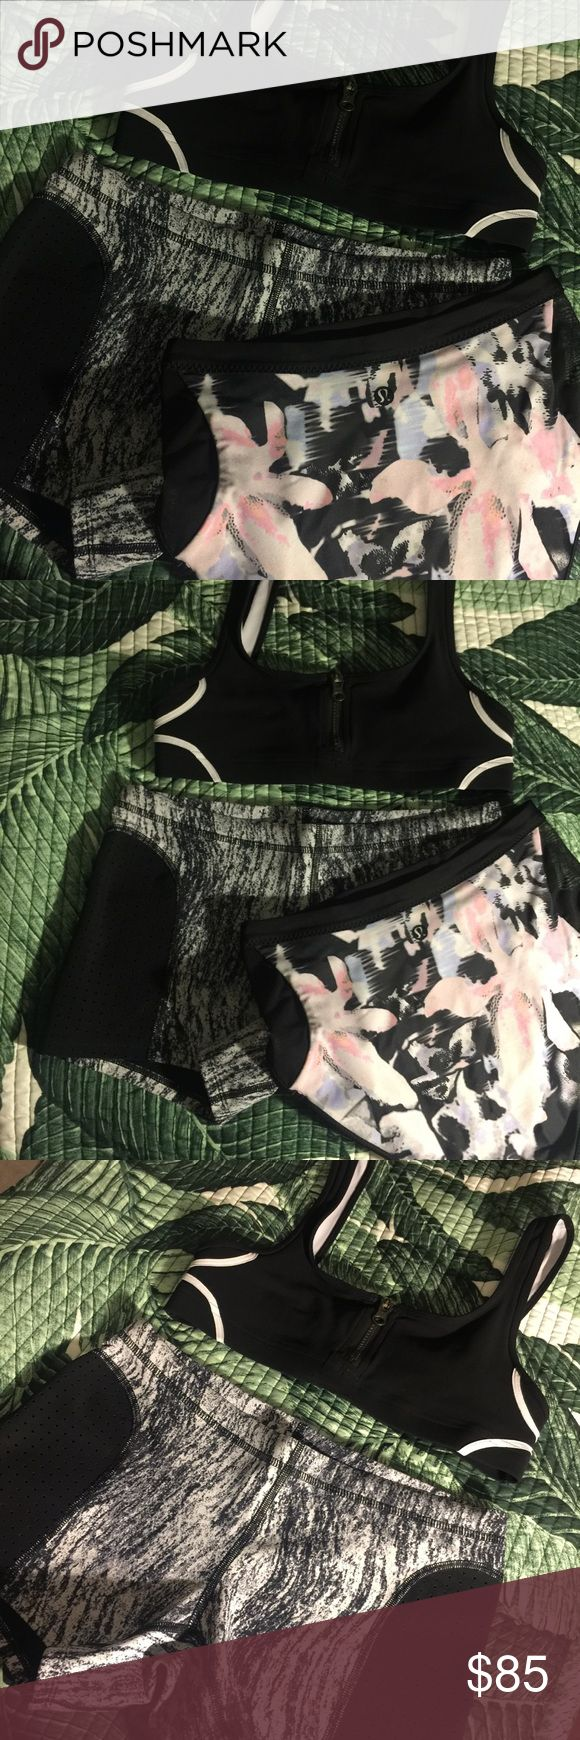 3 piece lululemon swimwear set all three items are size 4. This set comes with the swim top that zips up in the middle, the board shorts and the high waisted bottoms! lululemon athletica Swim